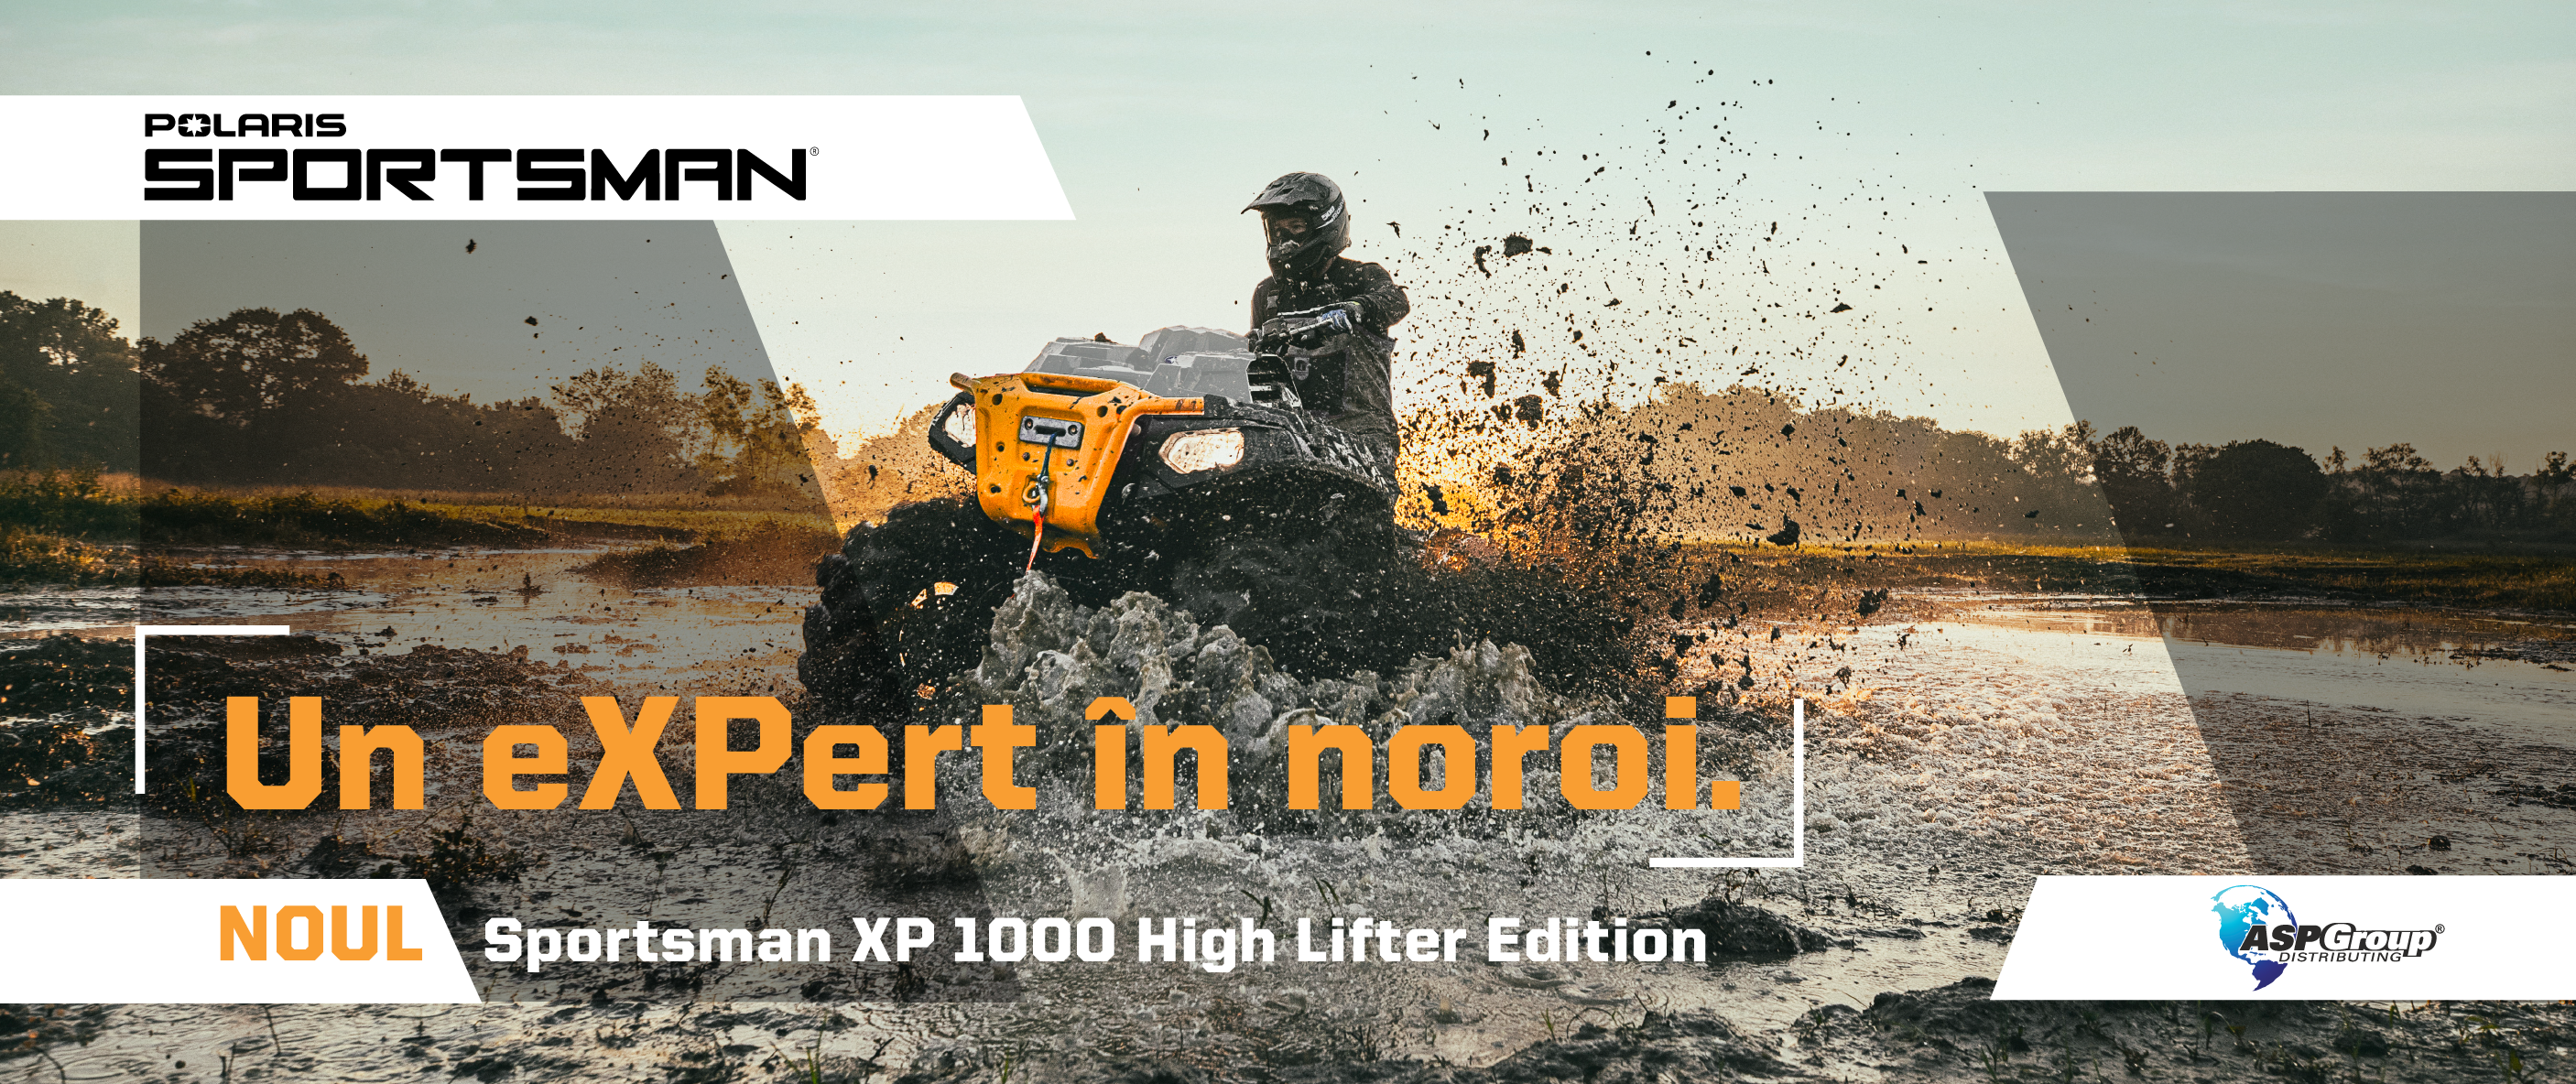 http://www.polarisofficial.ro/sites/default/files/revslider/image/Sportsman-XP-1000-high-lifter.png